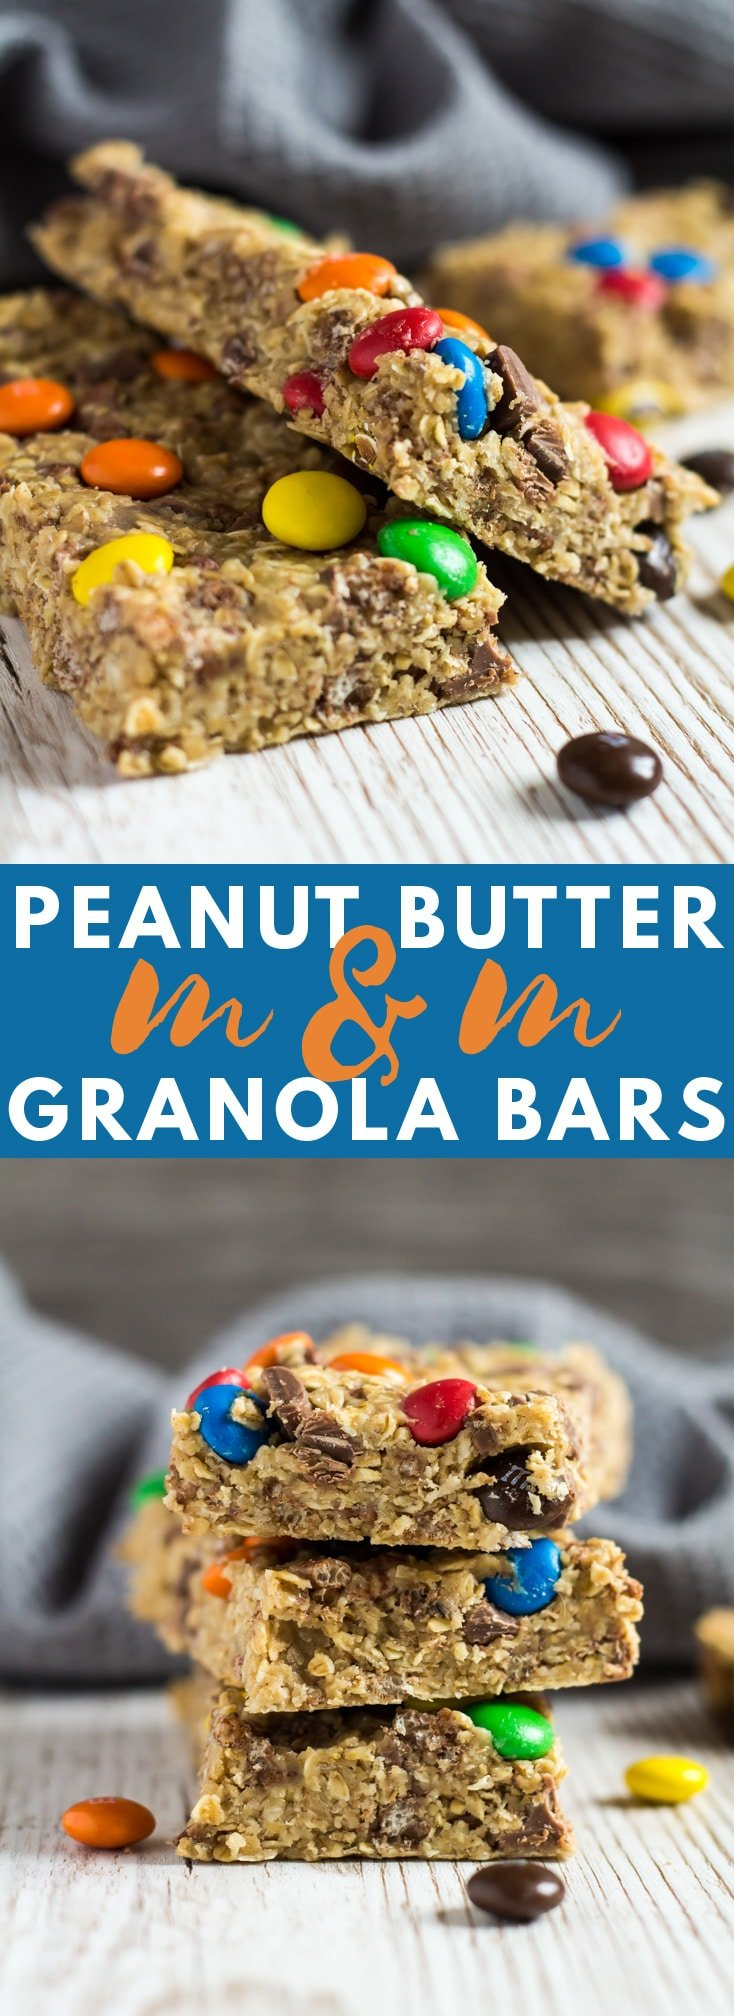 No-Bake Peanut Butter M&M Granola Bars - Deliciously thick and chewy granola bars loaded with peanut butter flavour, and stuffed full of chocolate chips and M&MS!